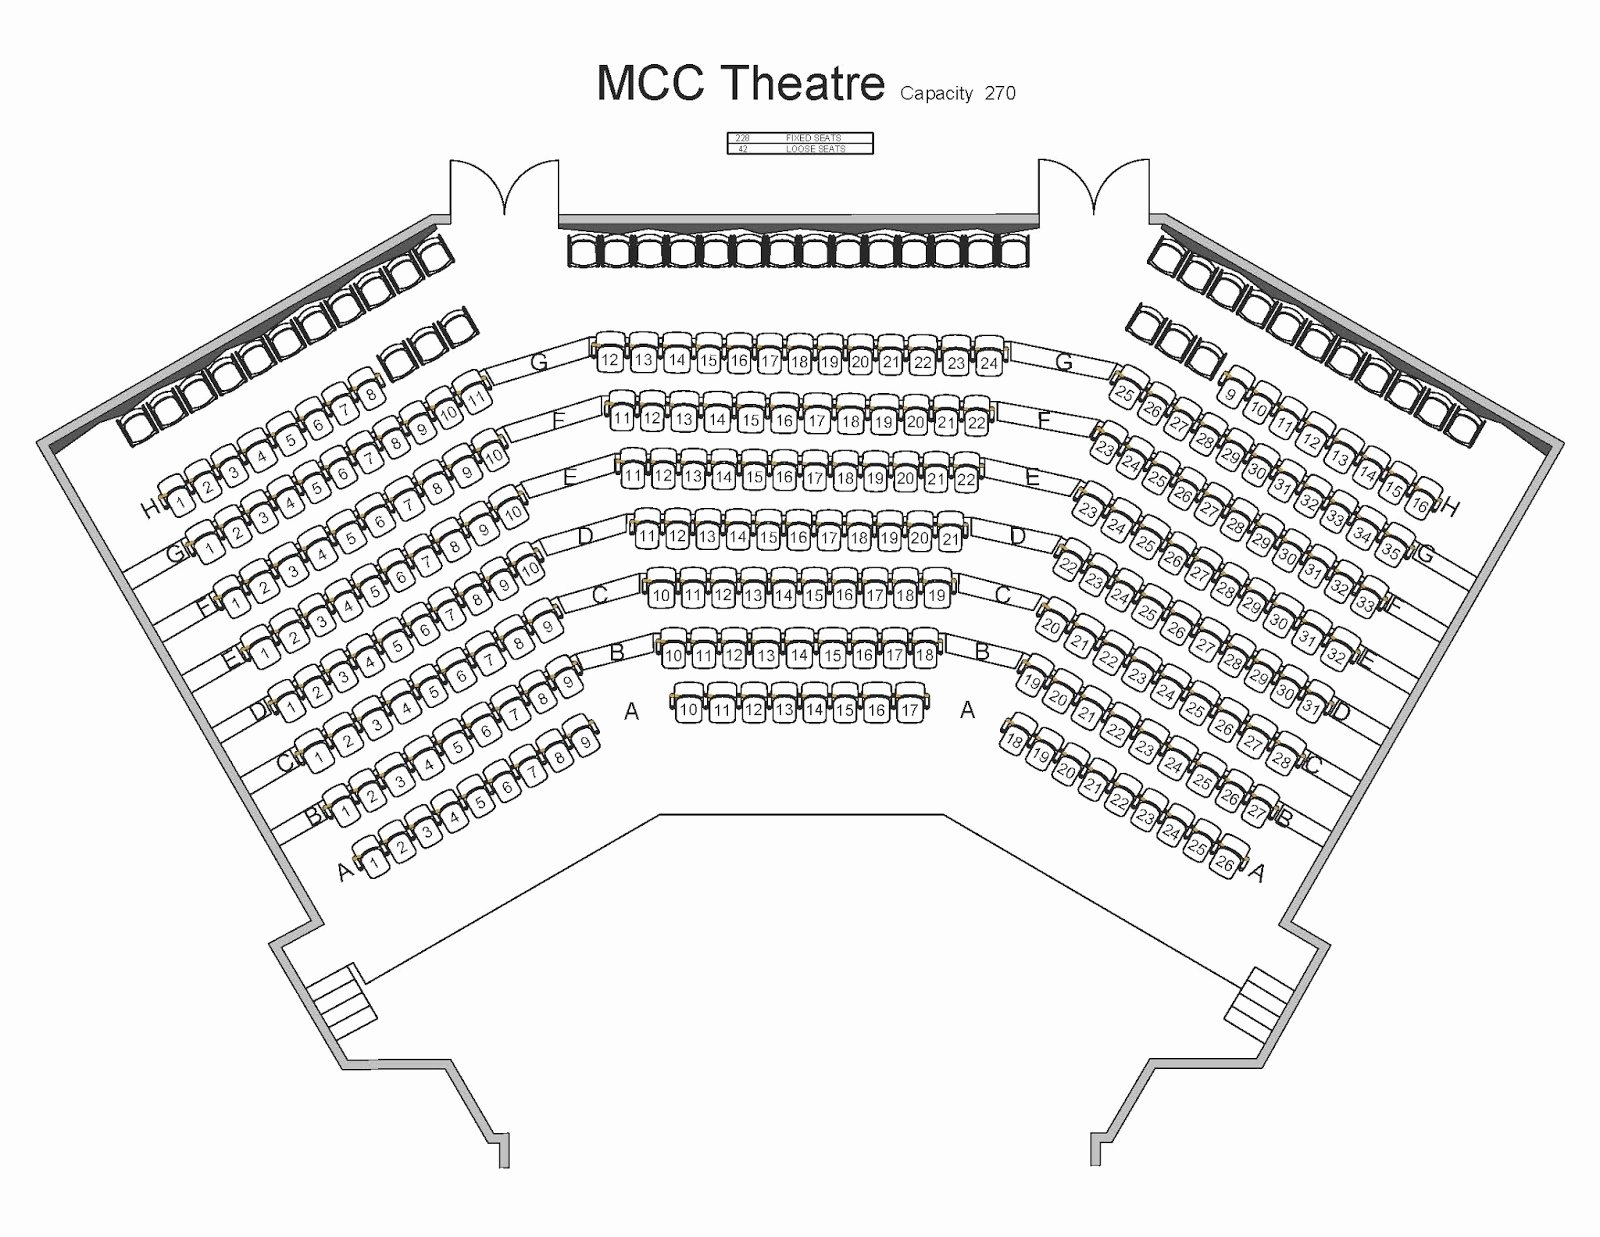 Auditorium Seating Chart Template Fresh Mahaffey theater Seating Chart